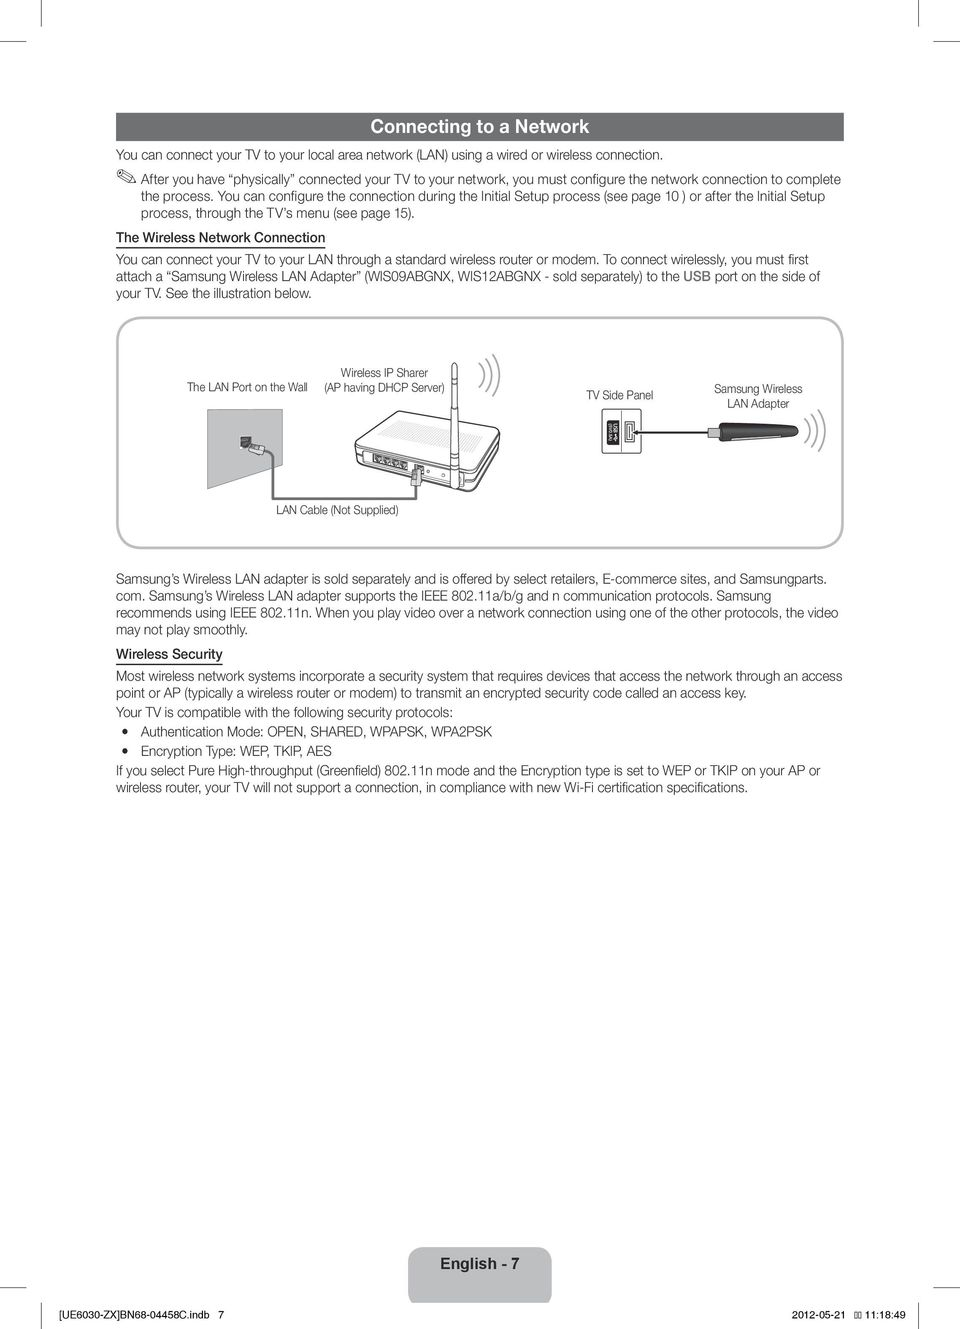 You can configure the connection during the Initial Setup process (see page 10 ) or after the Initial Setup process, through the TV s menu (see page 15).